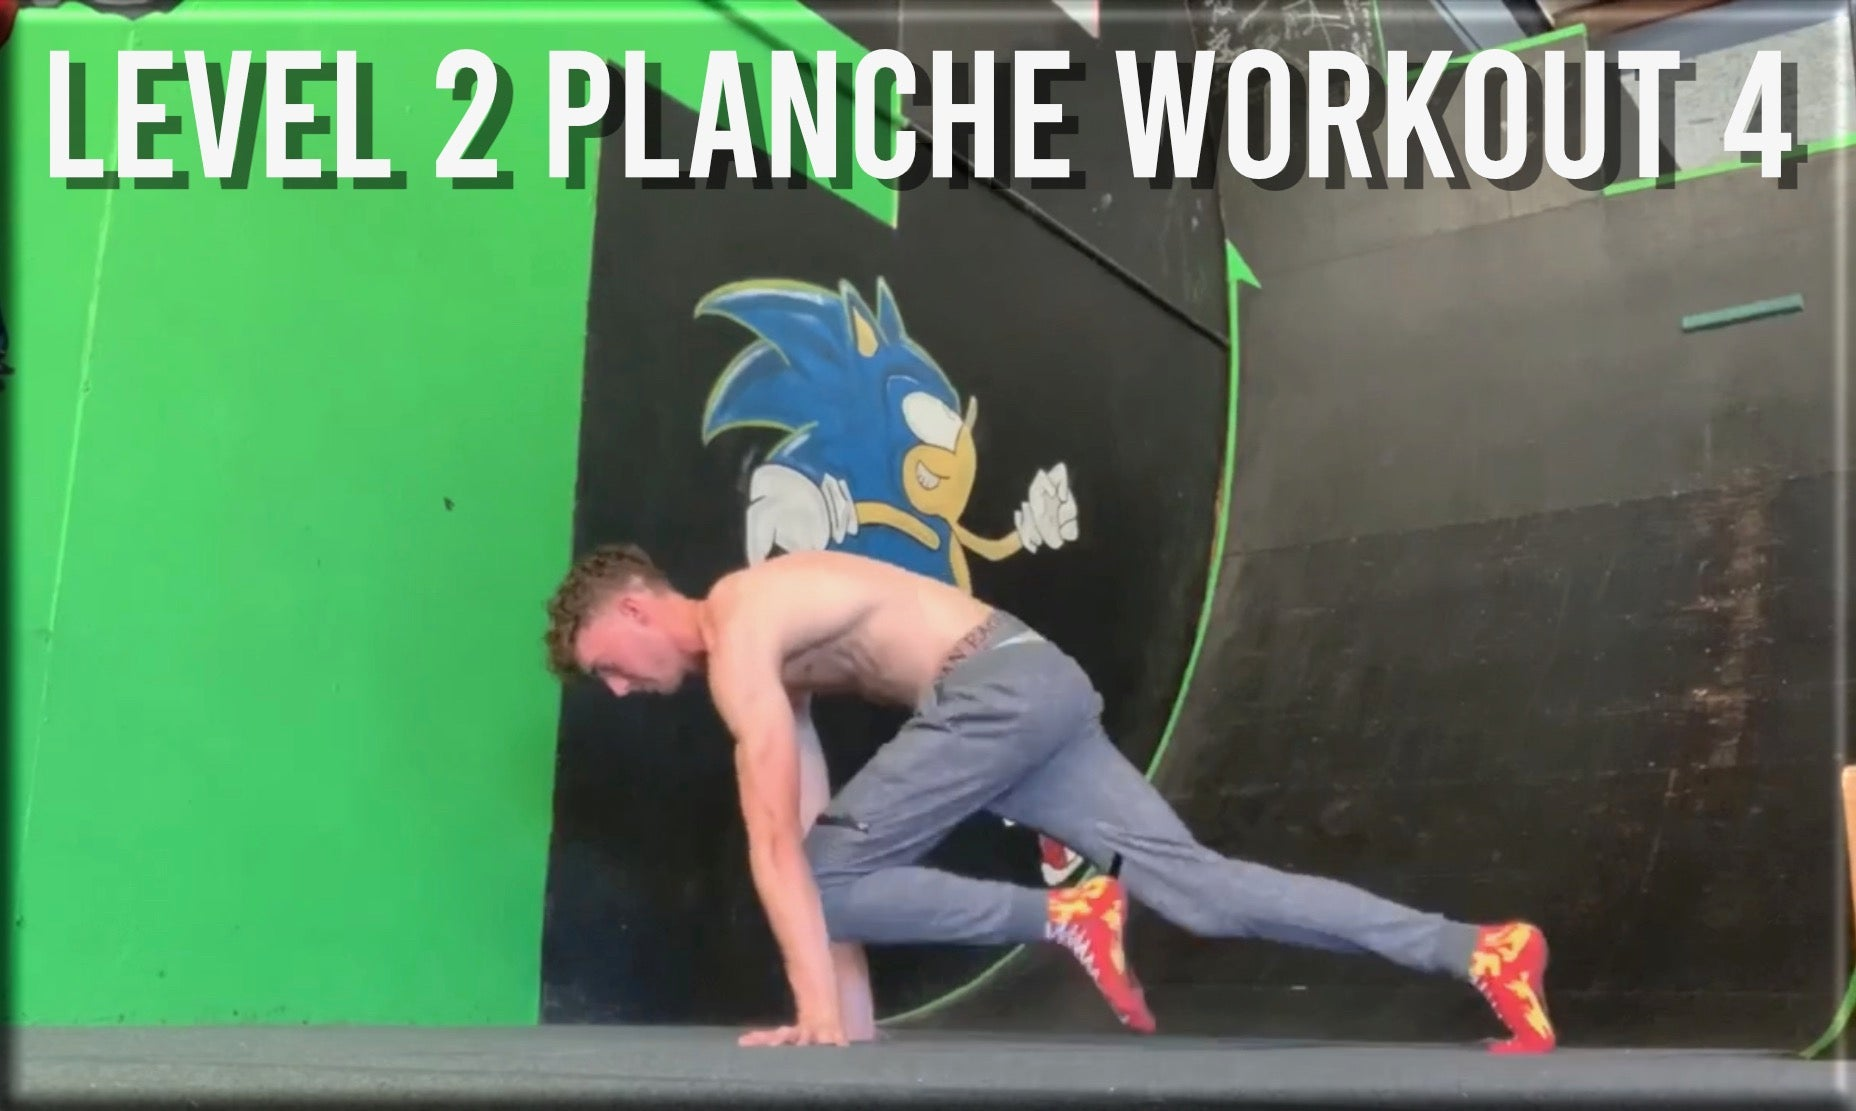 Level 2 Planche Workout 4